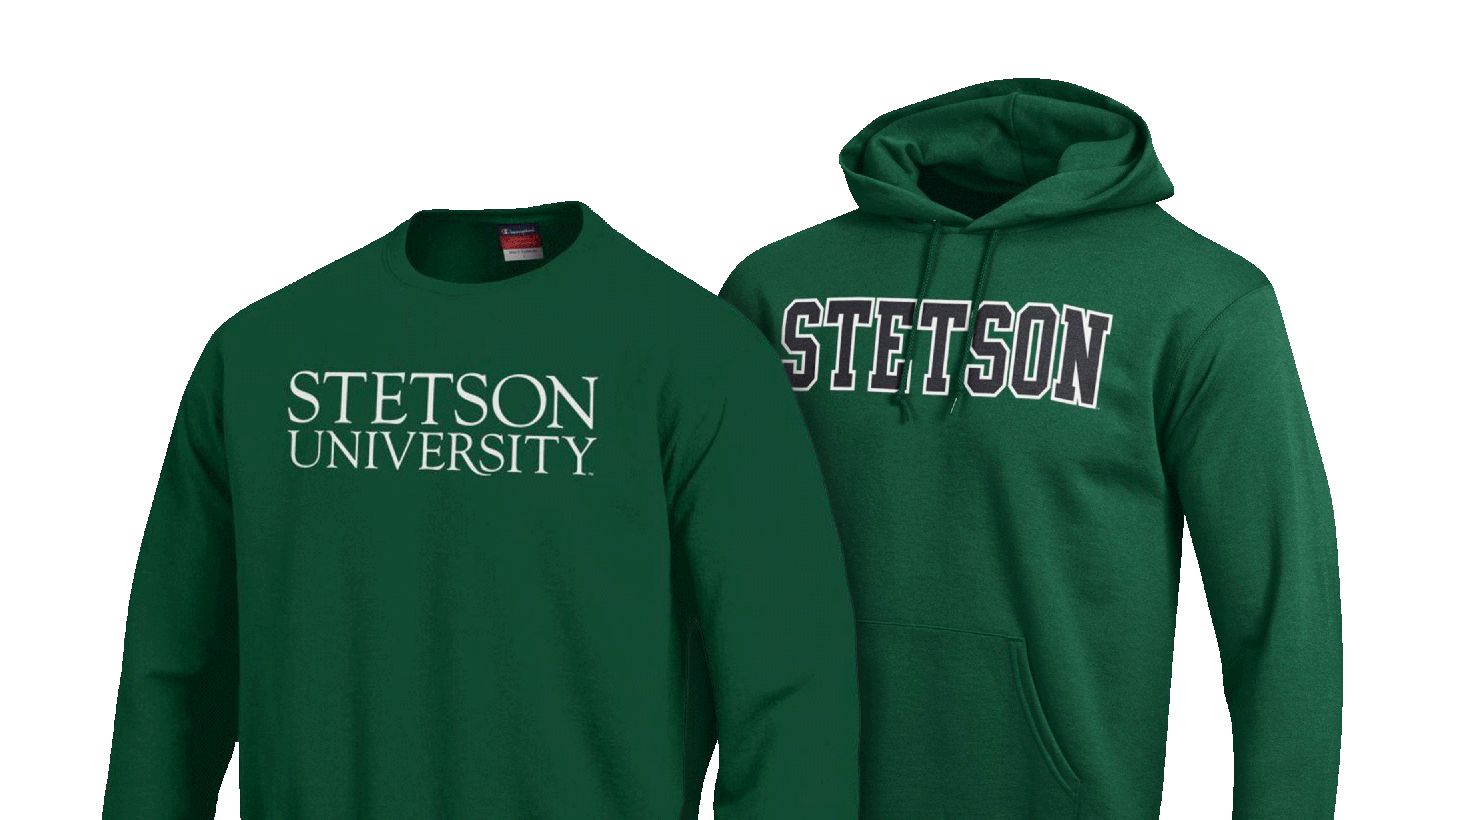 403c4b8749a Stetson University Bookstore Apparel, Merchandise, & Gifts